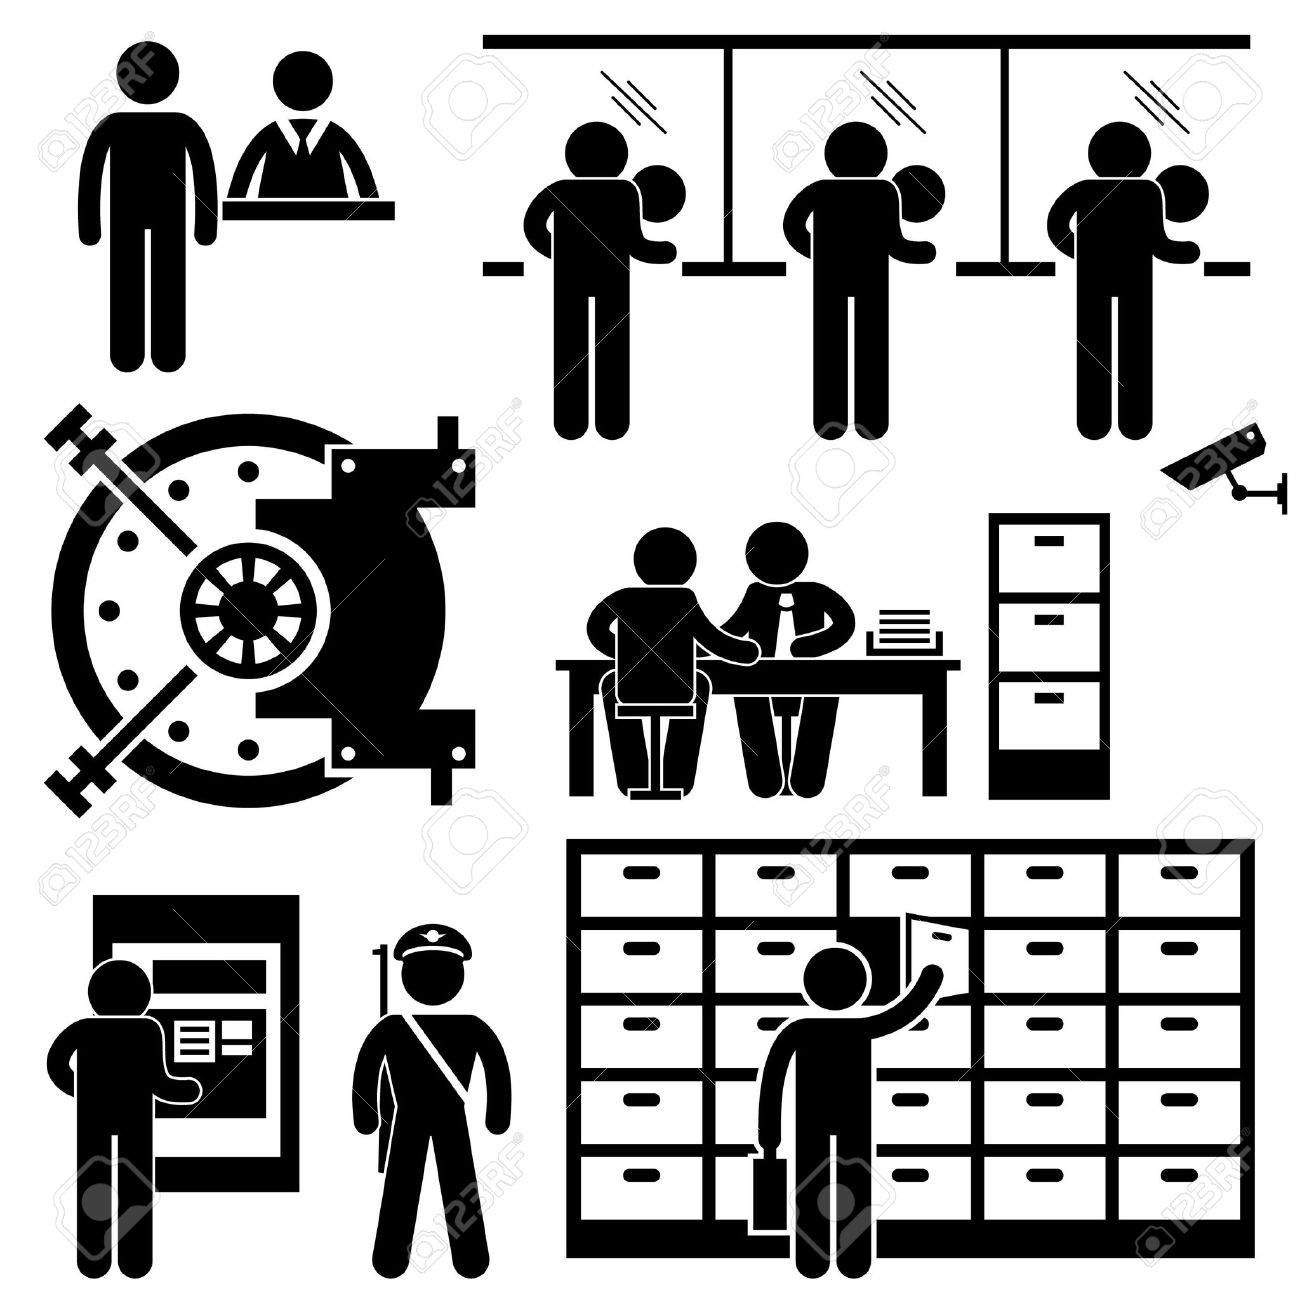 Bank Business Finance Worker Staff Agent Consultant Customer Security Stick Figure Pictogram Icon Stock Vector - 18452152